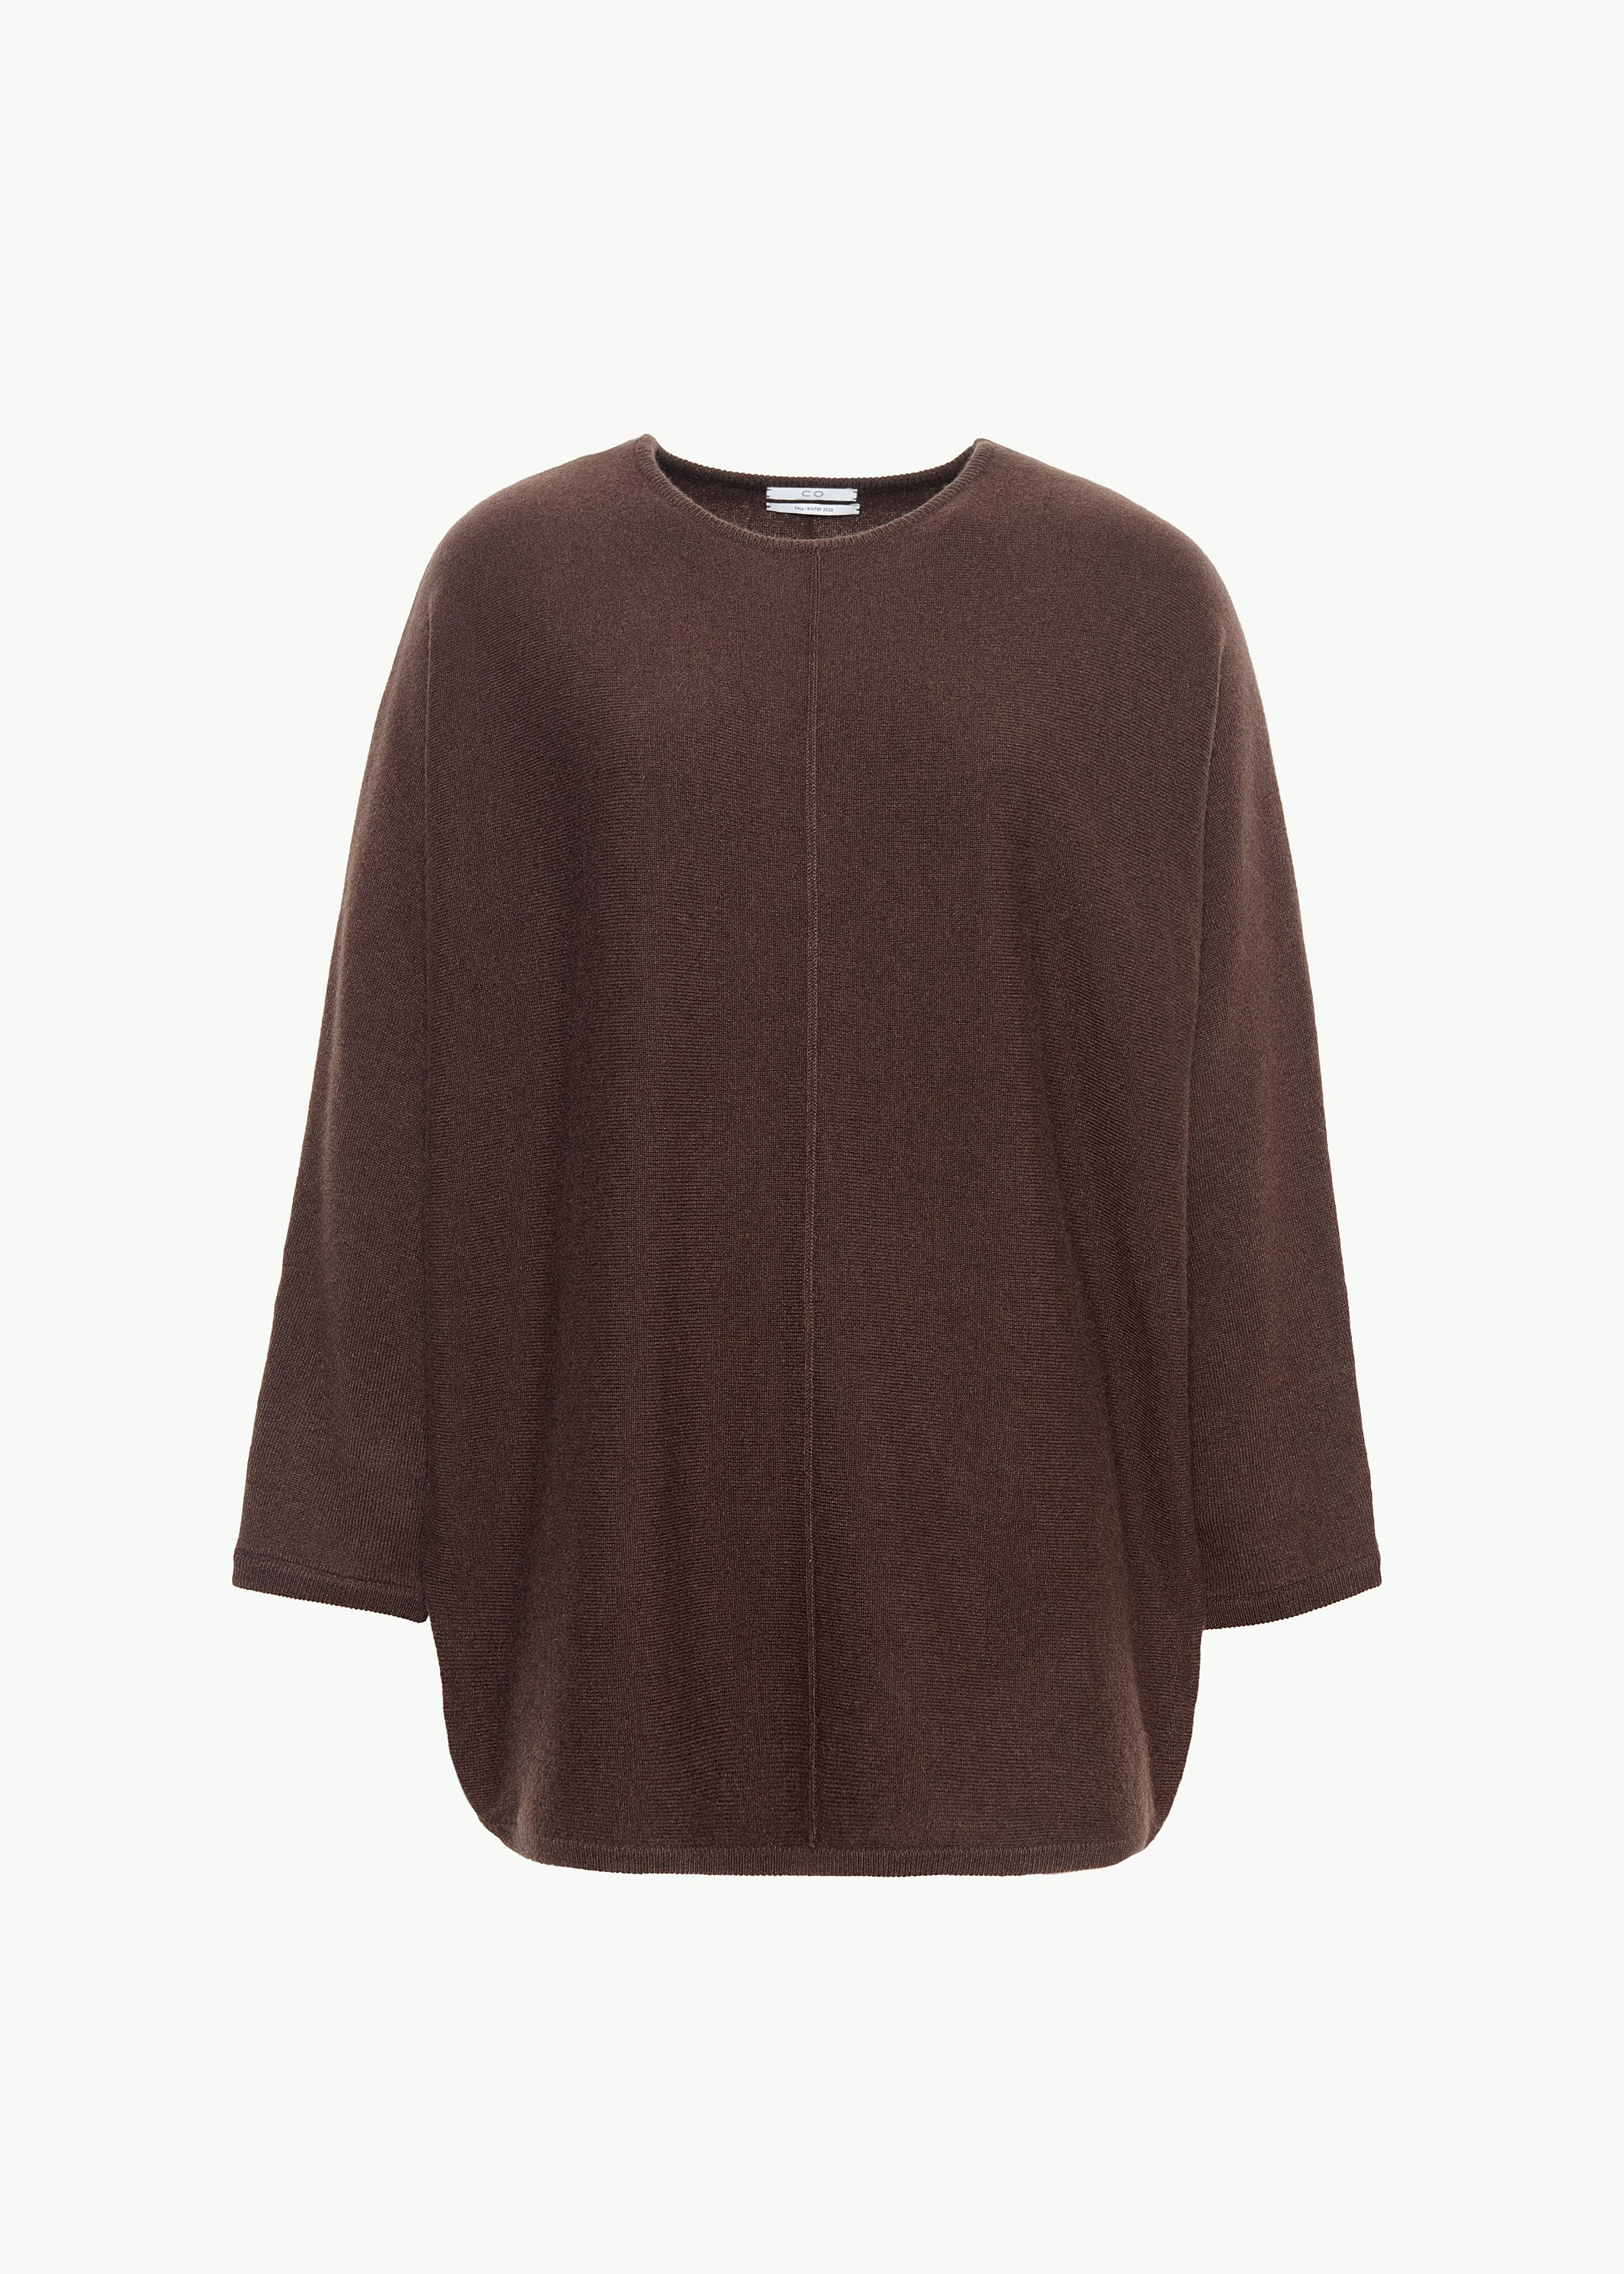 Crew Neck Dolman Sleeve Sweater in Cashmere - Olive in Chocolate by Co Collections